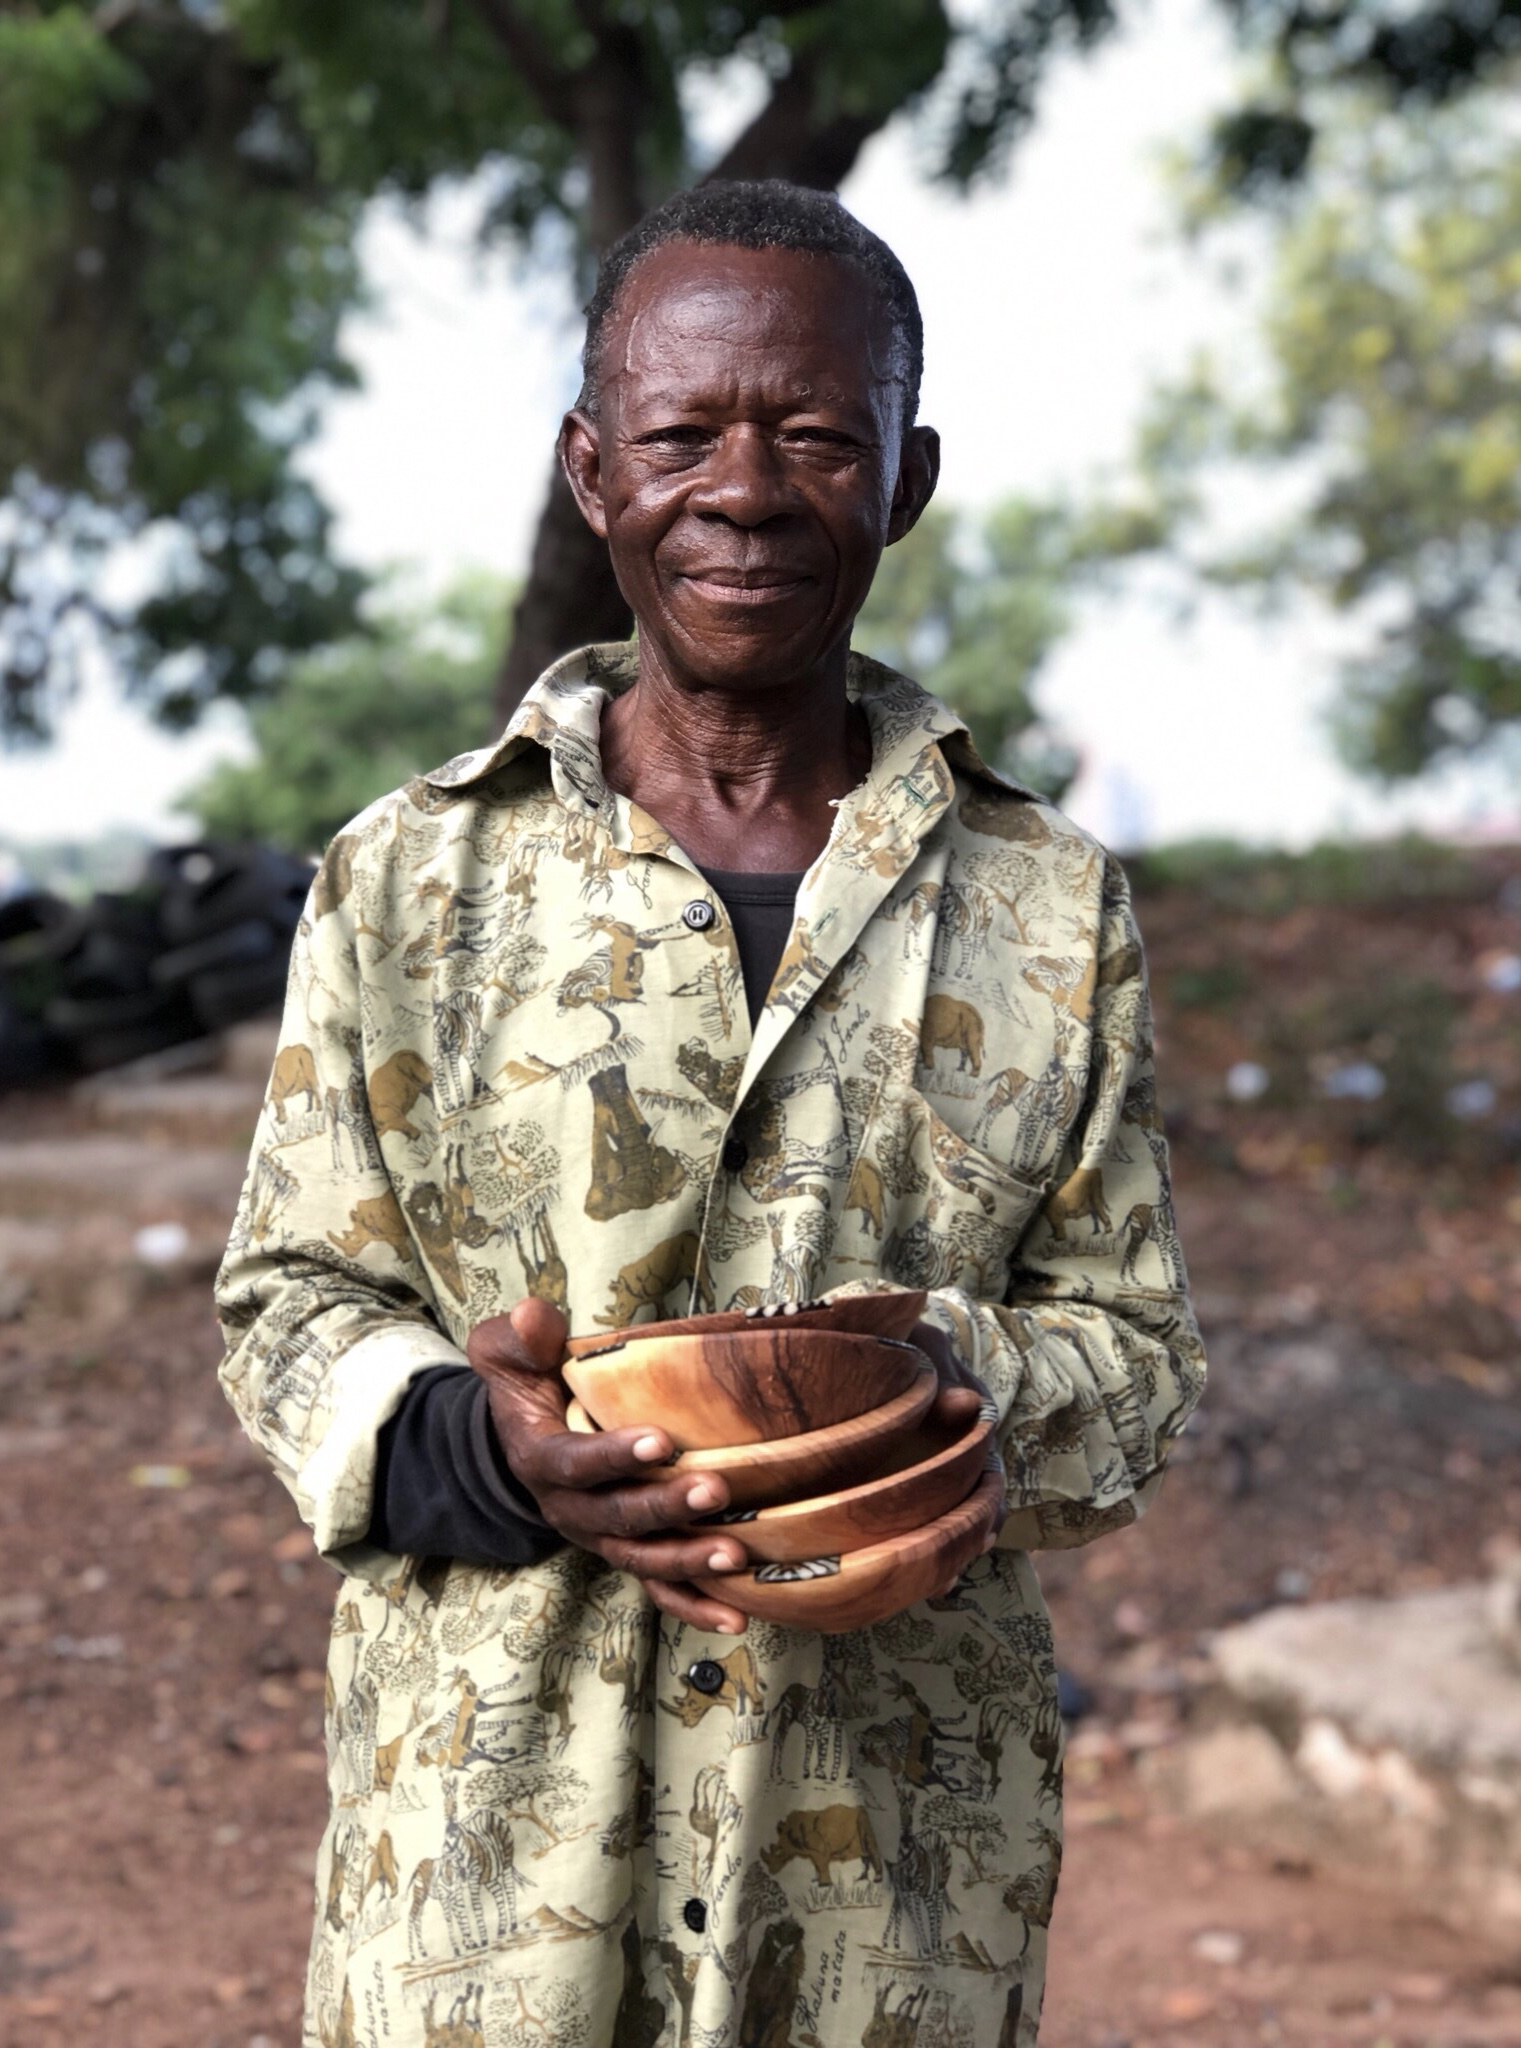 Samuel - is one of the most talented artist in the Accra Region. We are selling his coco ice box and wooden bowls in our studio